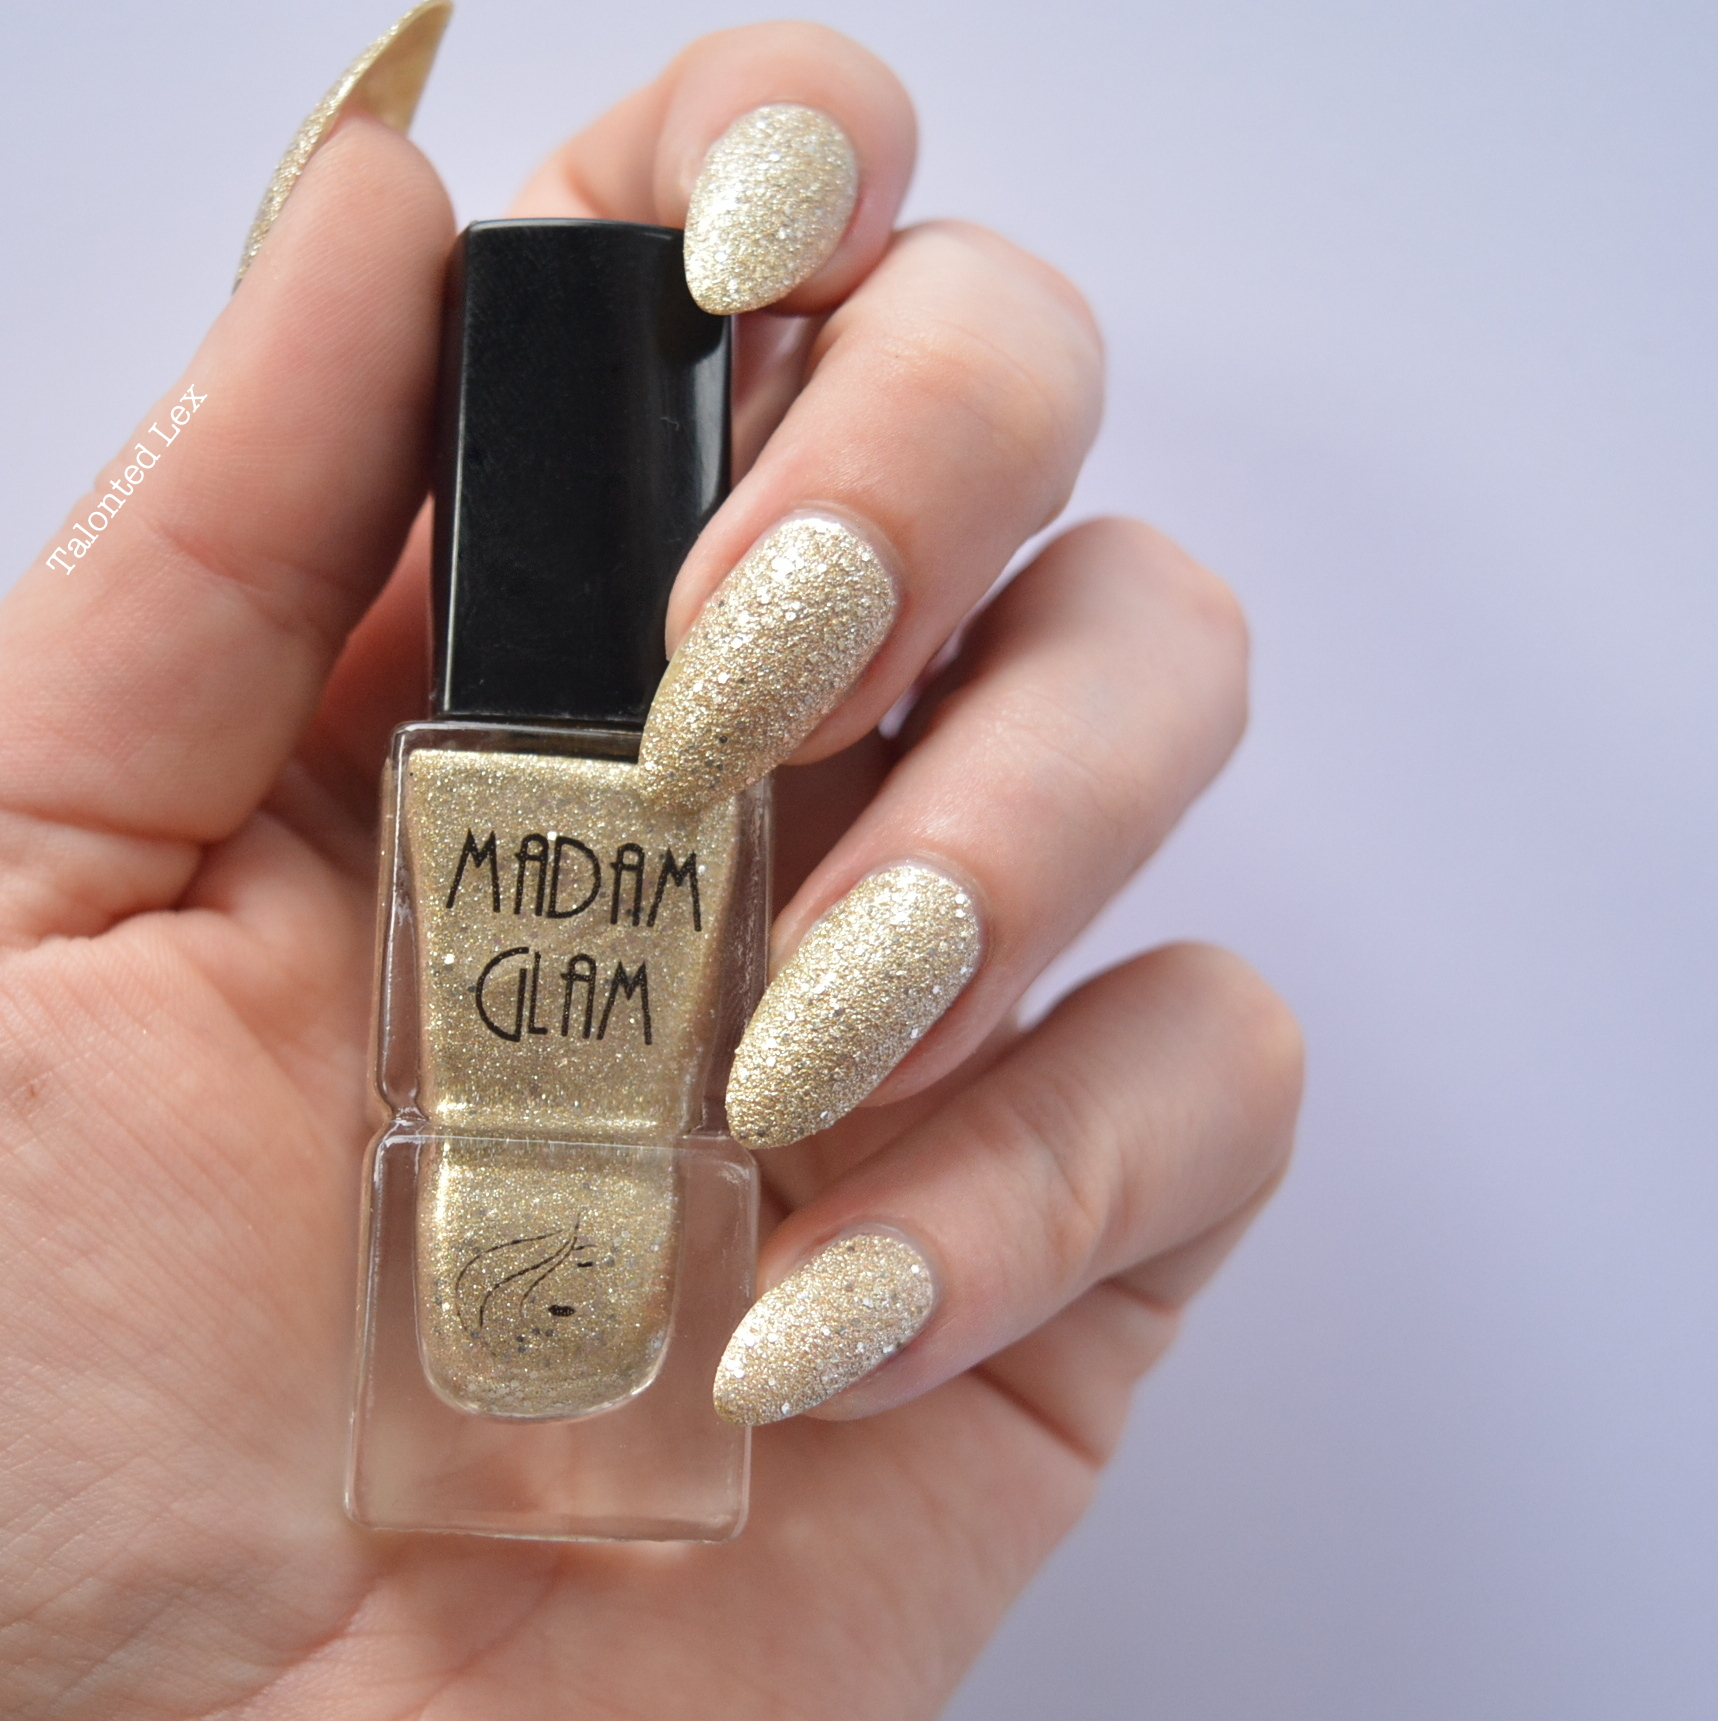 Madam-Glam-Sandy-Beach-Nail-varnish-review-Talonted-Lex